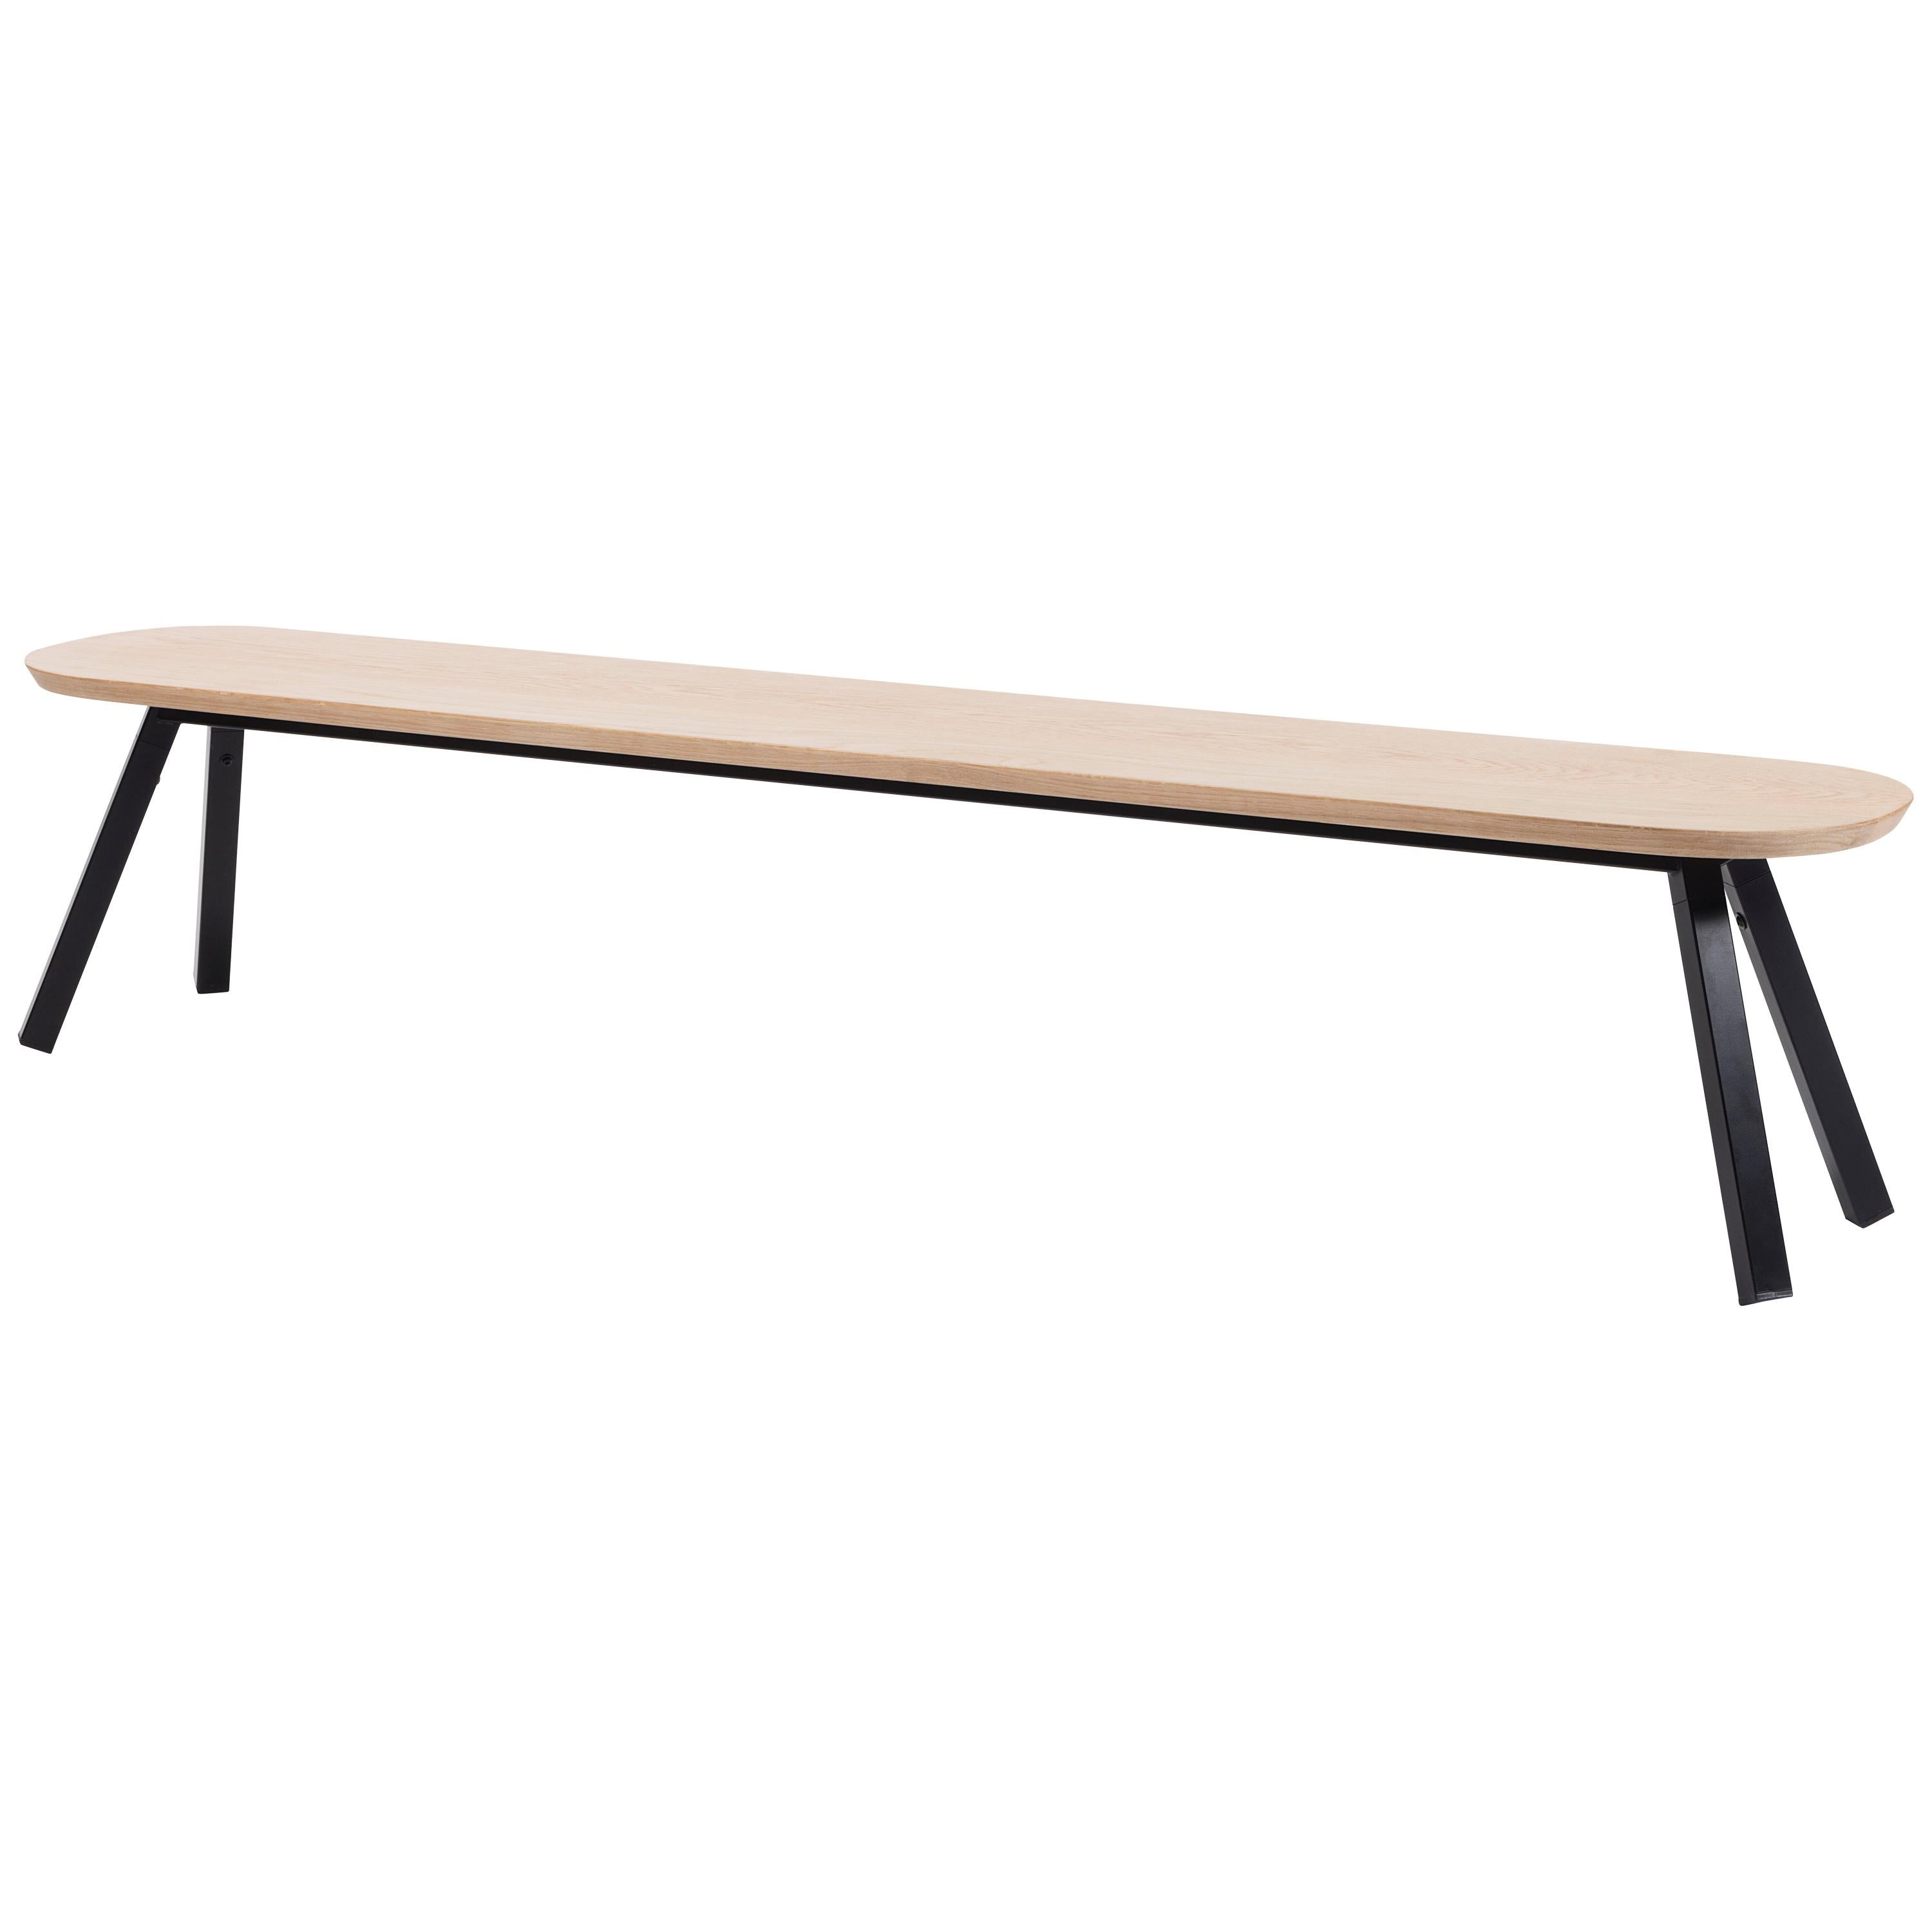 RS Barcelona You and Me 220 Bench in Oak with Black Legs by A.P.O.